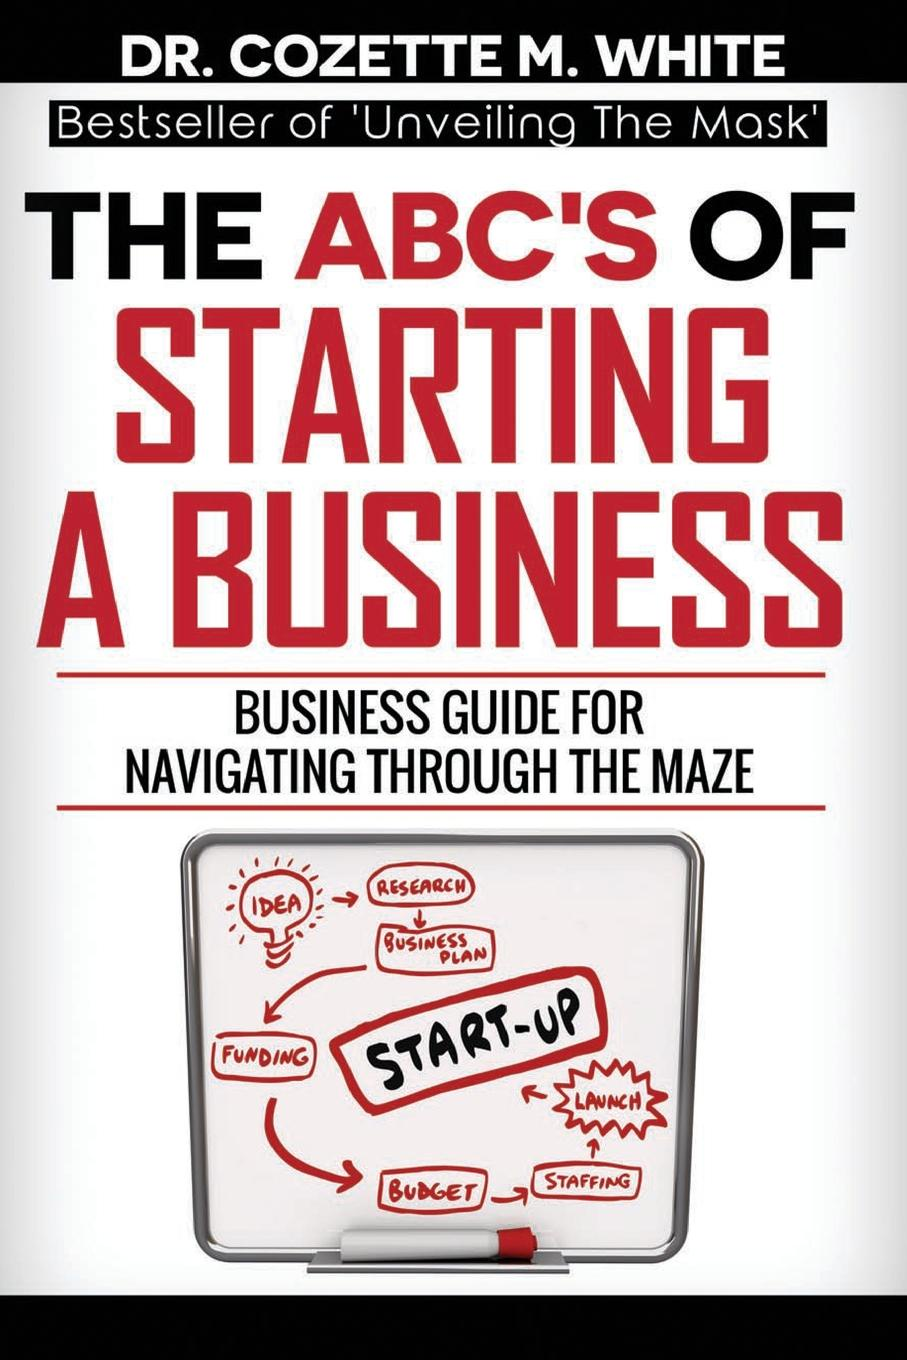 White M Cozette THE ABC.S OF STARTING A BUSINESS BUSINESS GUIDE FOR NAVIGATING THROUGH THE MAZE adam toren starting your own business become an entrepreneur